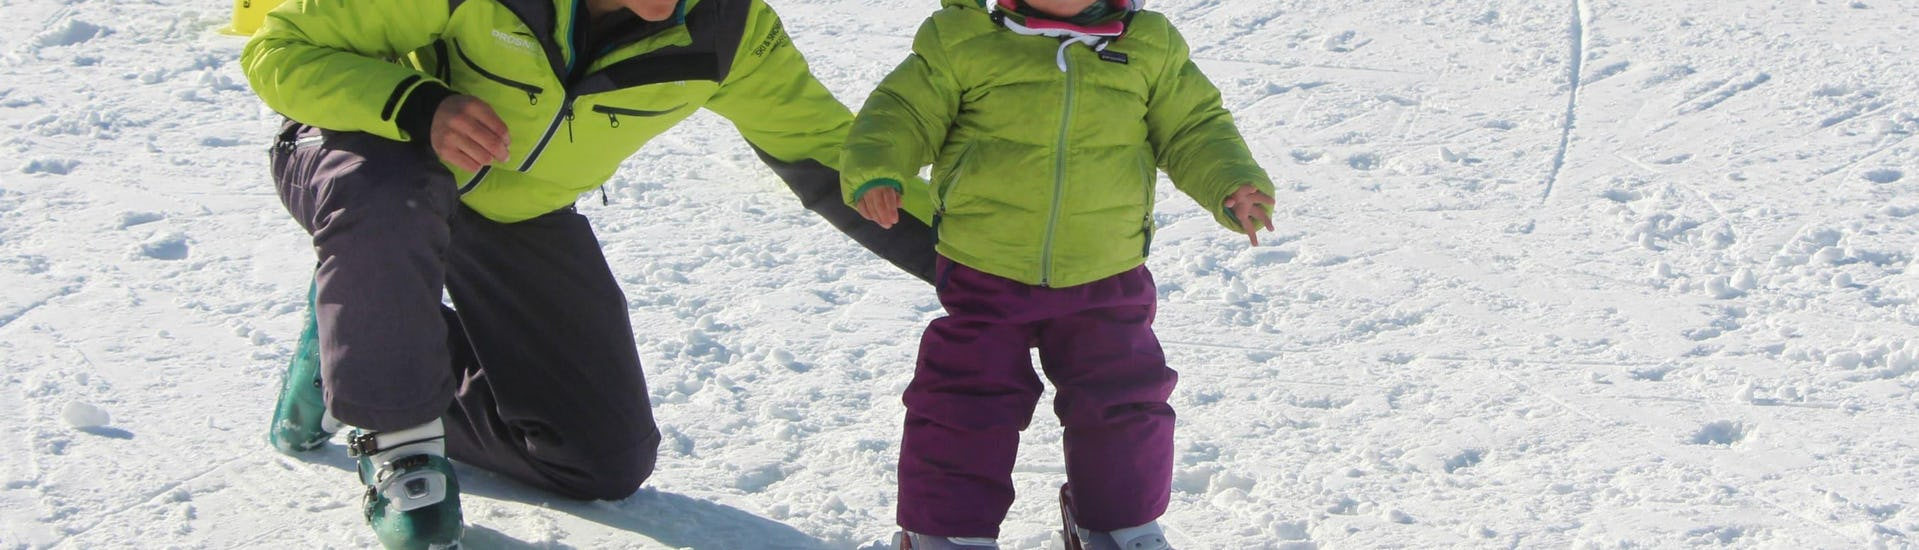 """A young child is learning to ski with the help of a ski instructor from the ski school Prosneige Val Thorens & Les Menuires during Kids Ski Lessons """"Petits Ours"""" (3-4 years)."""